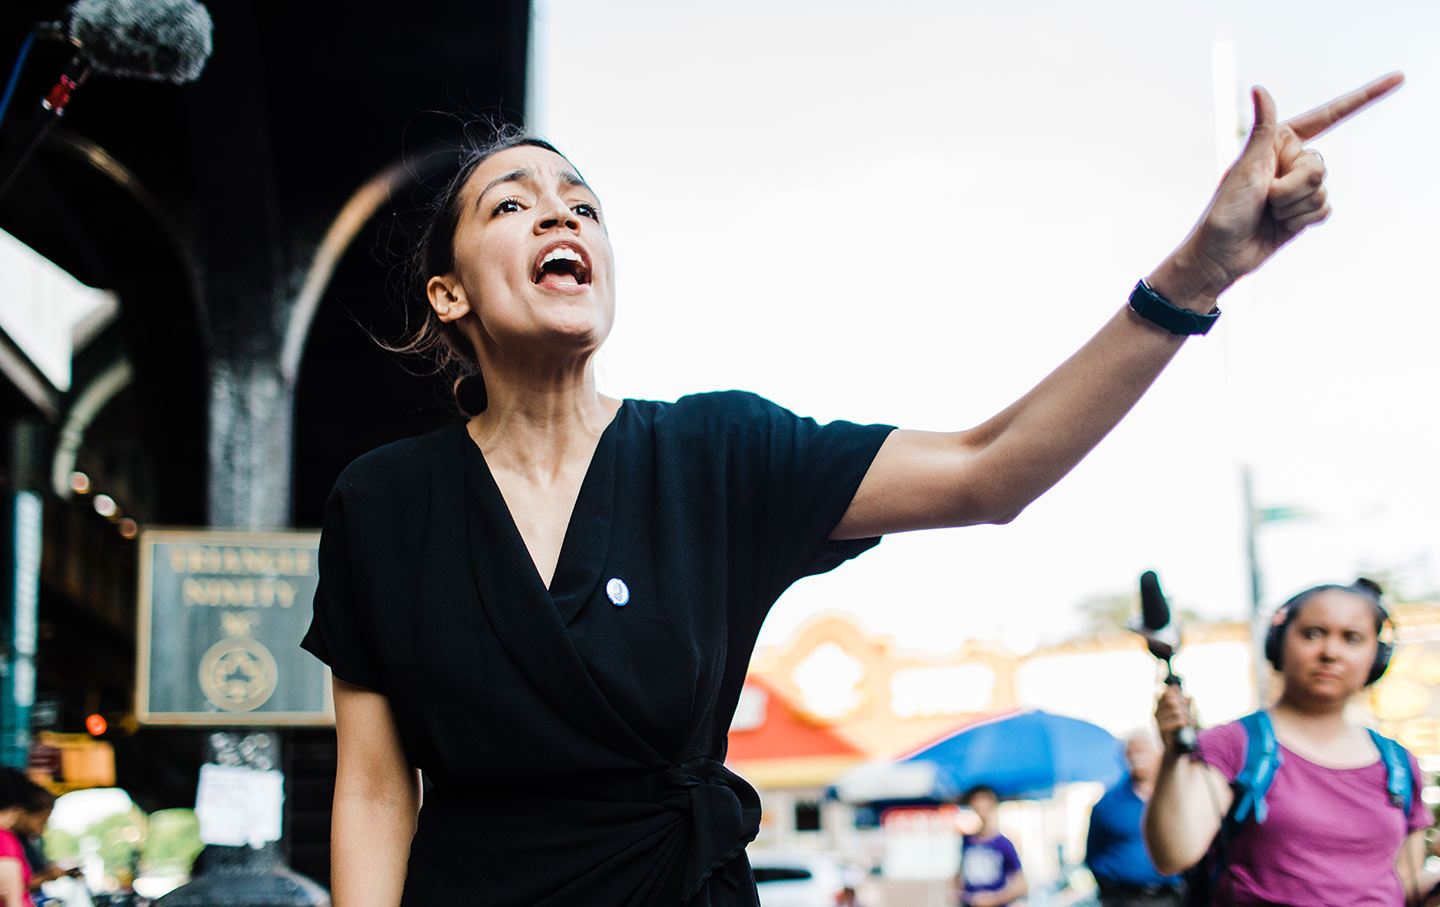 Alexandria Ocasio-Cortez Fights the Power | The Nation